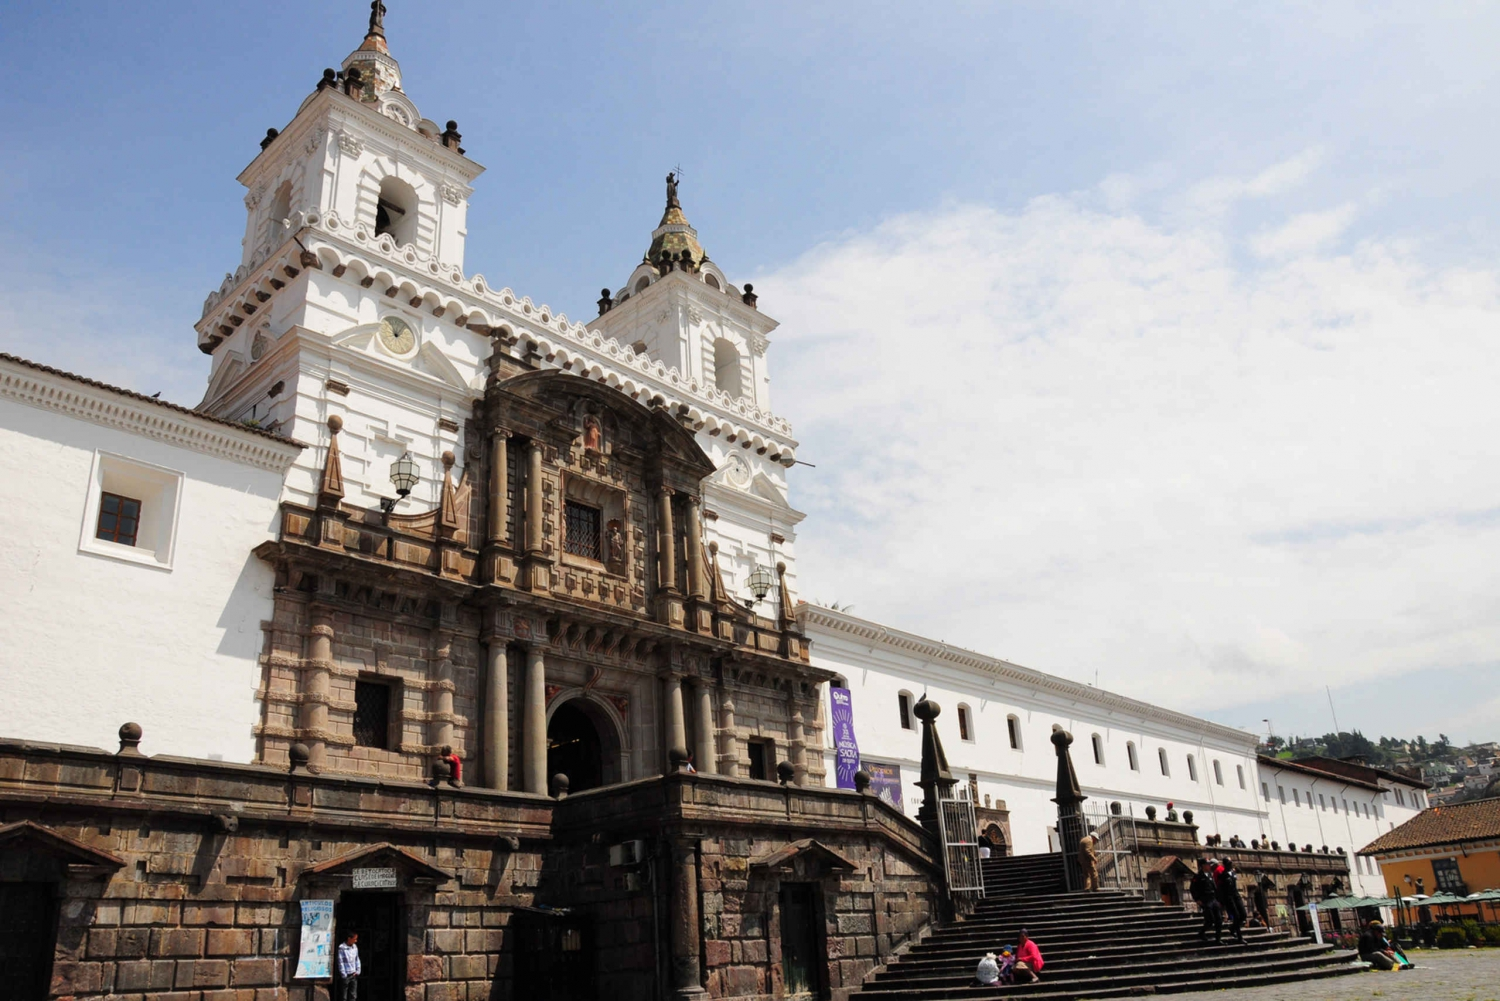 Quito: Street Food, Art and Historic City Tour